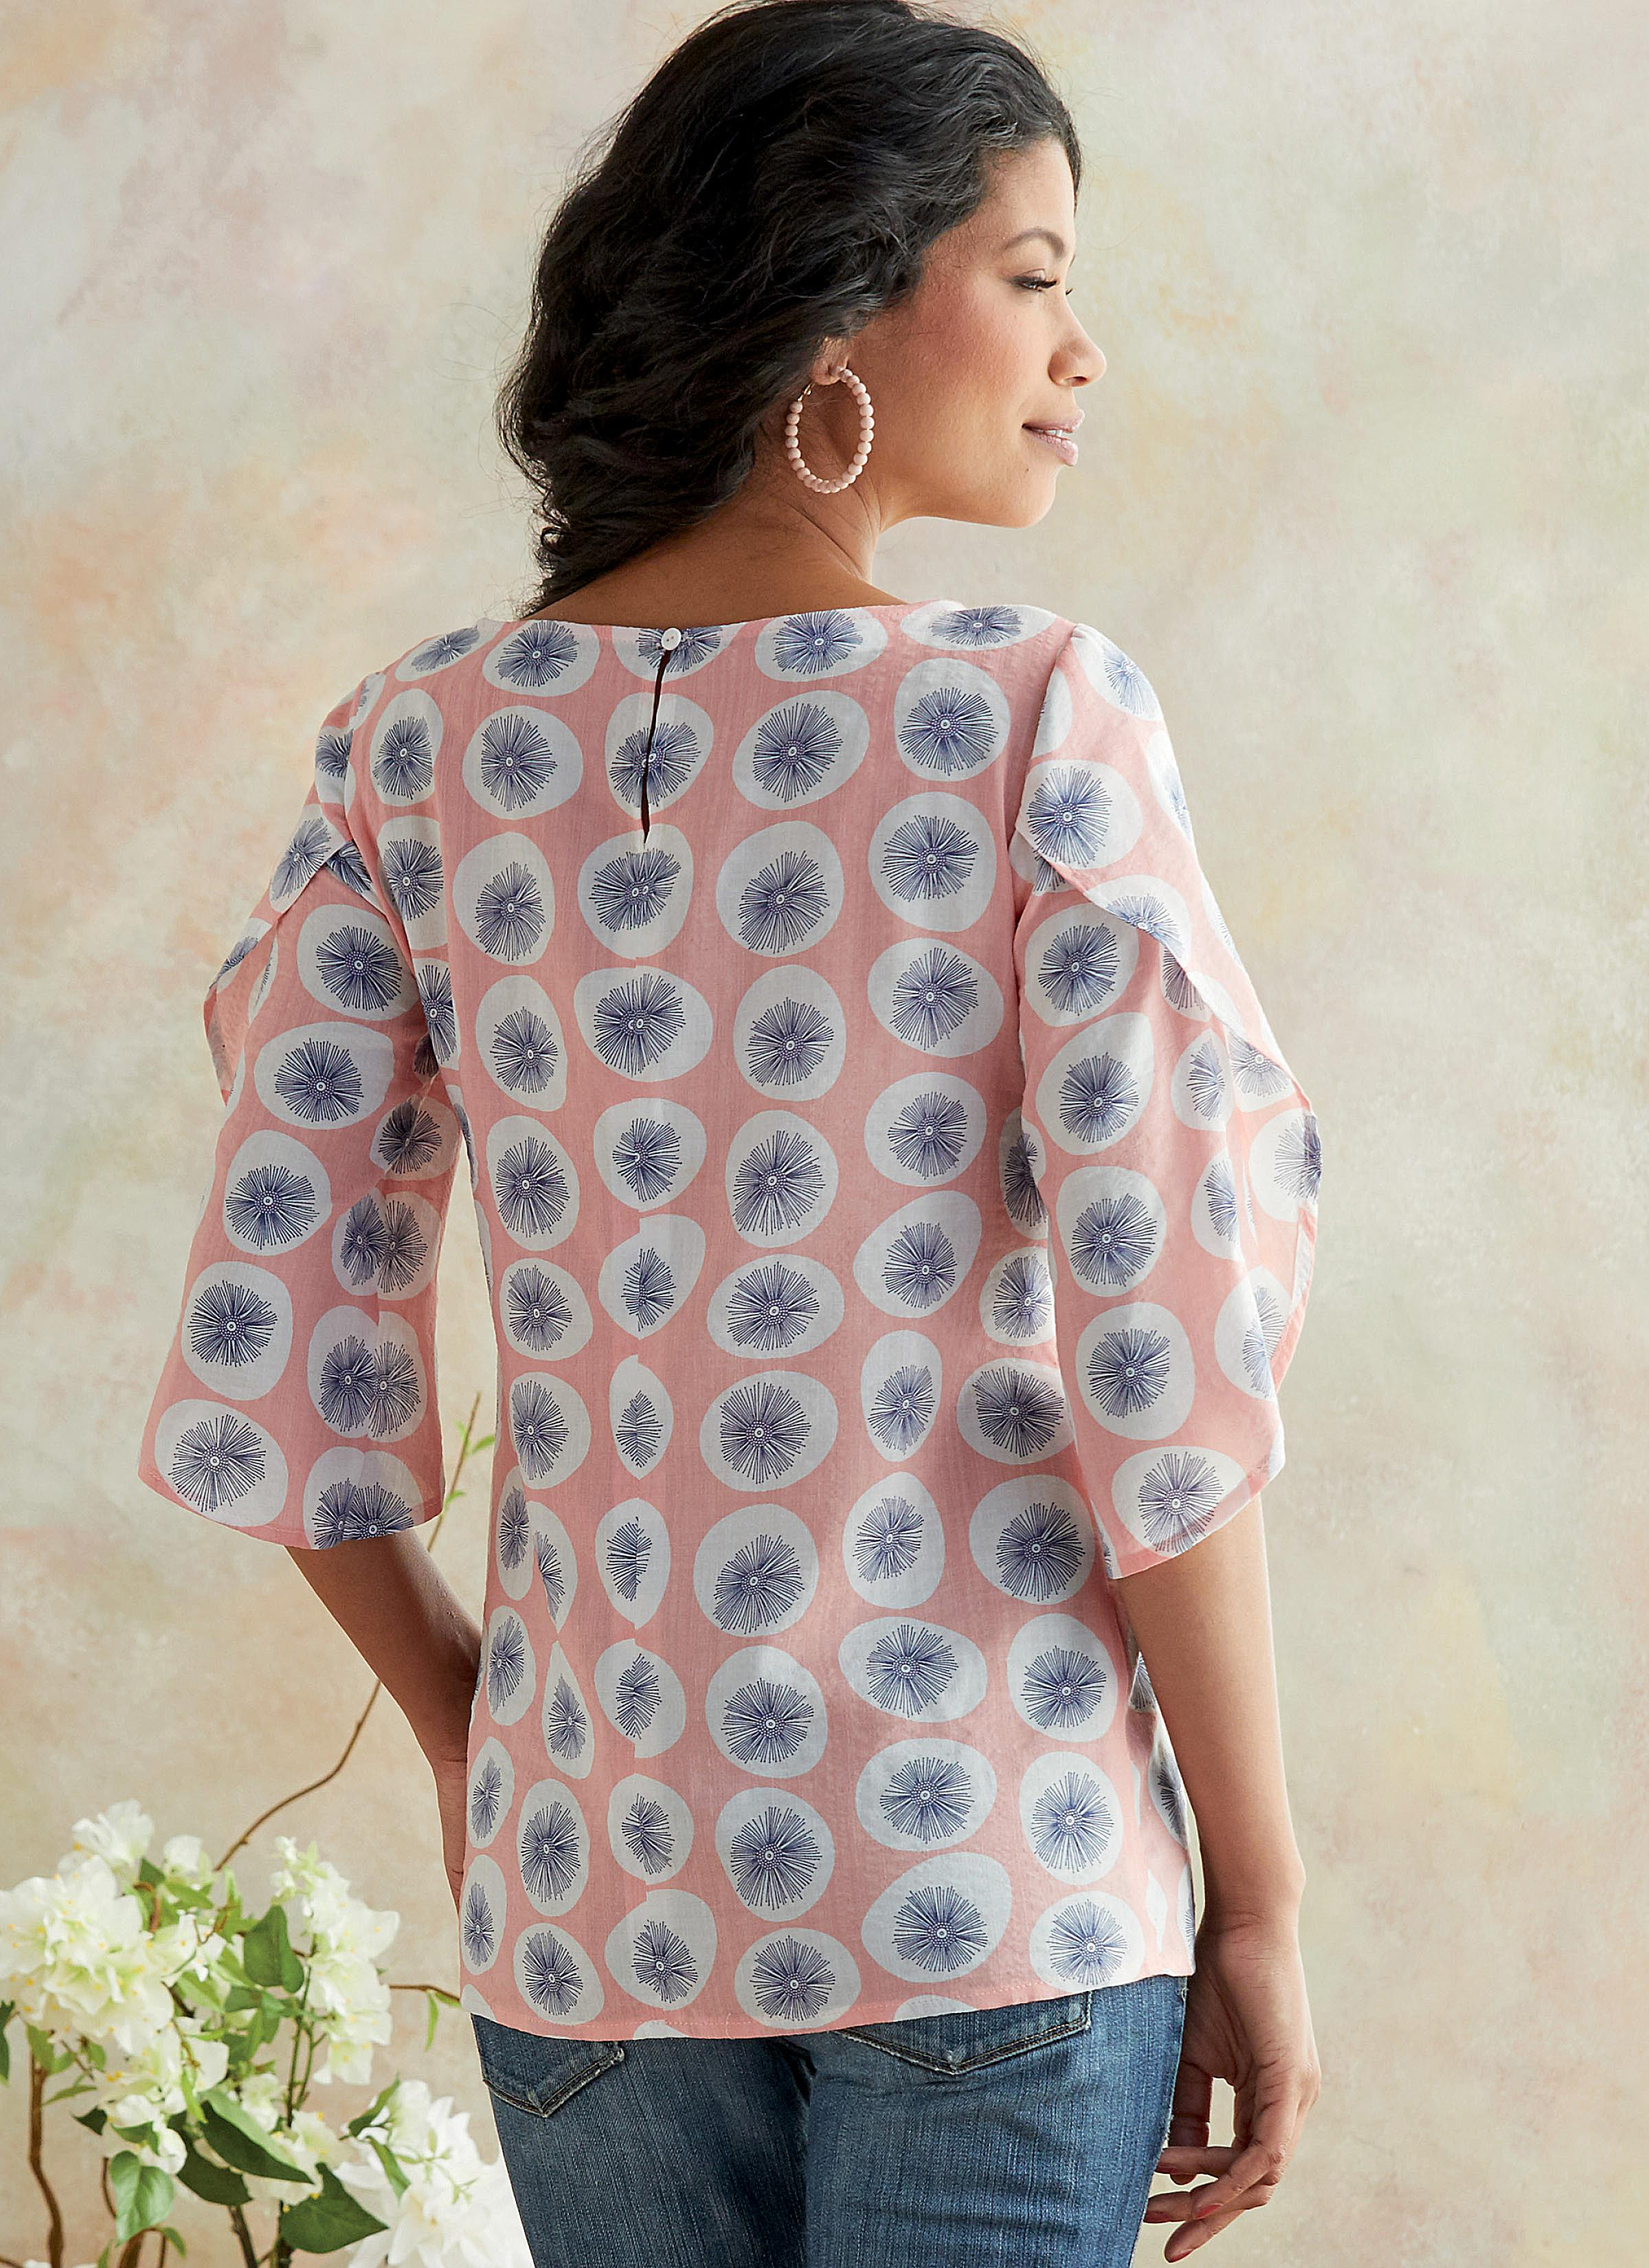 Butterick B6687 Misses' Top